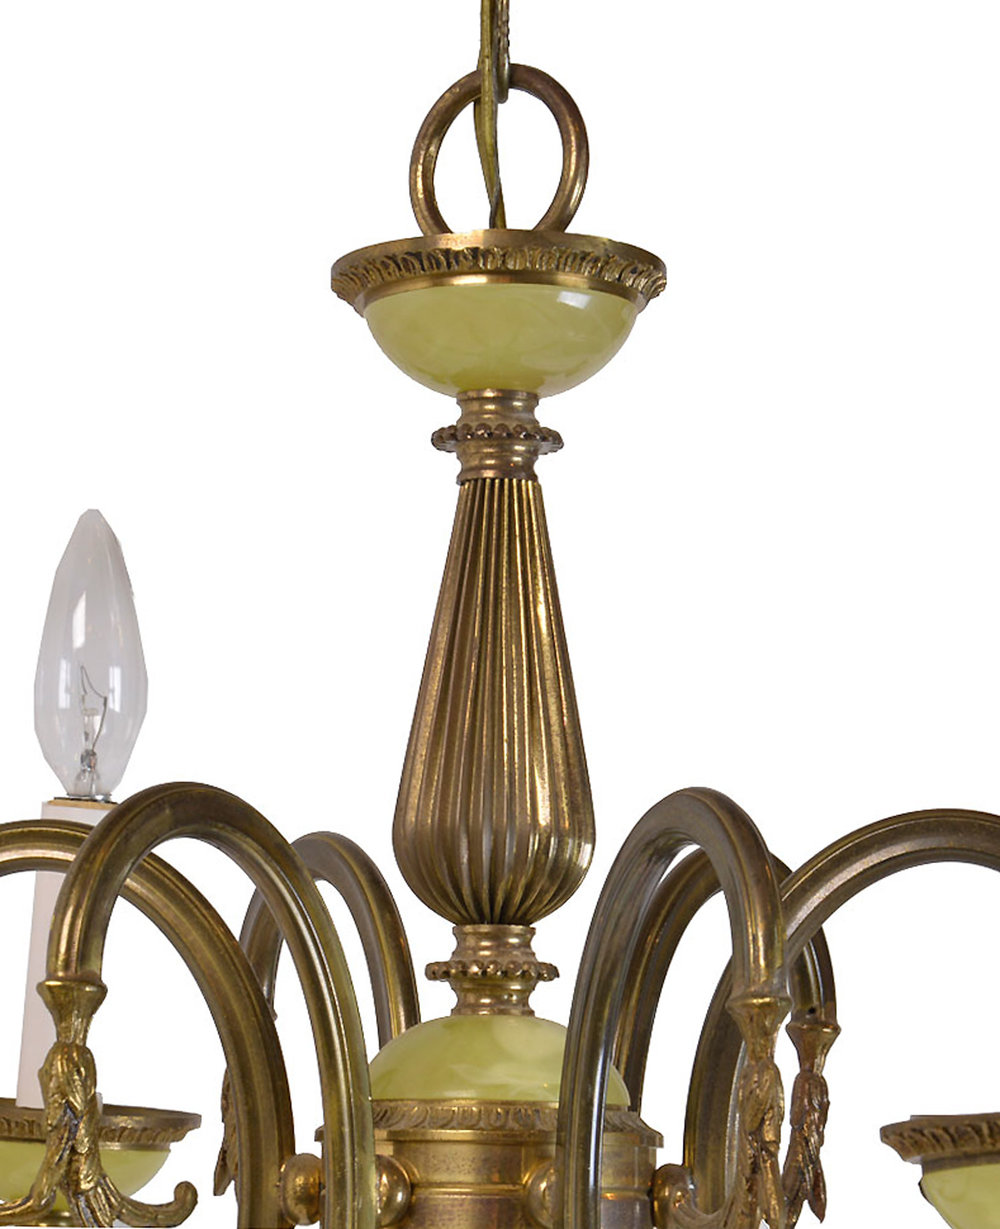 46510--6-candle-chandelier-with-faux-green-glass-DETAIL.jpg